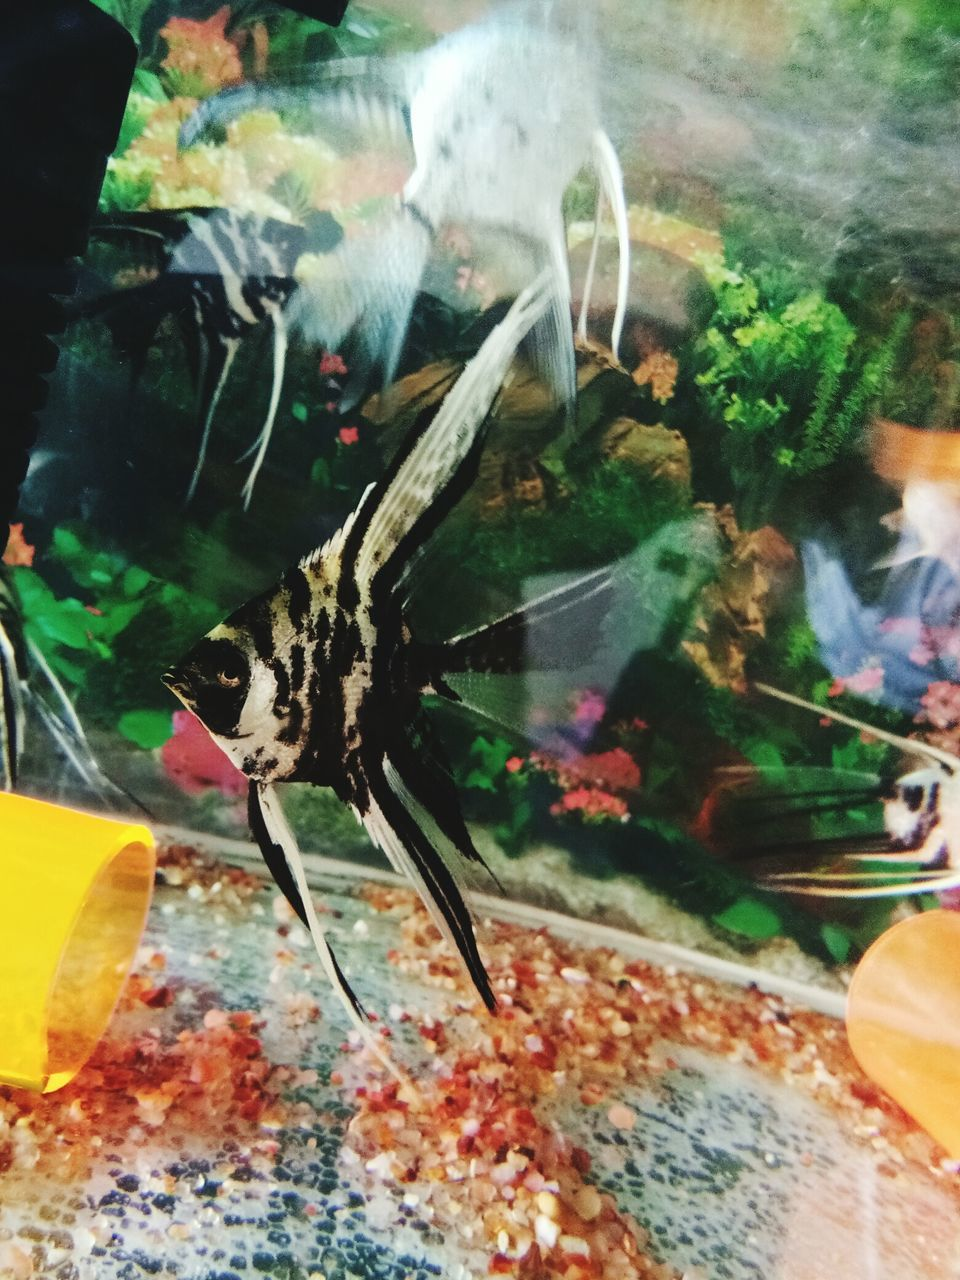 animal themes, animal, animals in the wild, animal wildlife, close-up, invertebrate, glass - material, transparent, animals in captivity, insect, one animal, no people, fish tank, indoors, water, nature, food, aquarium, lobster, marine